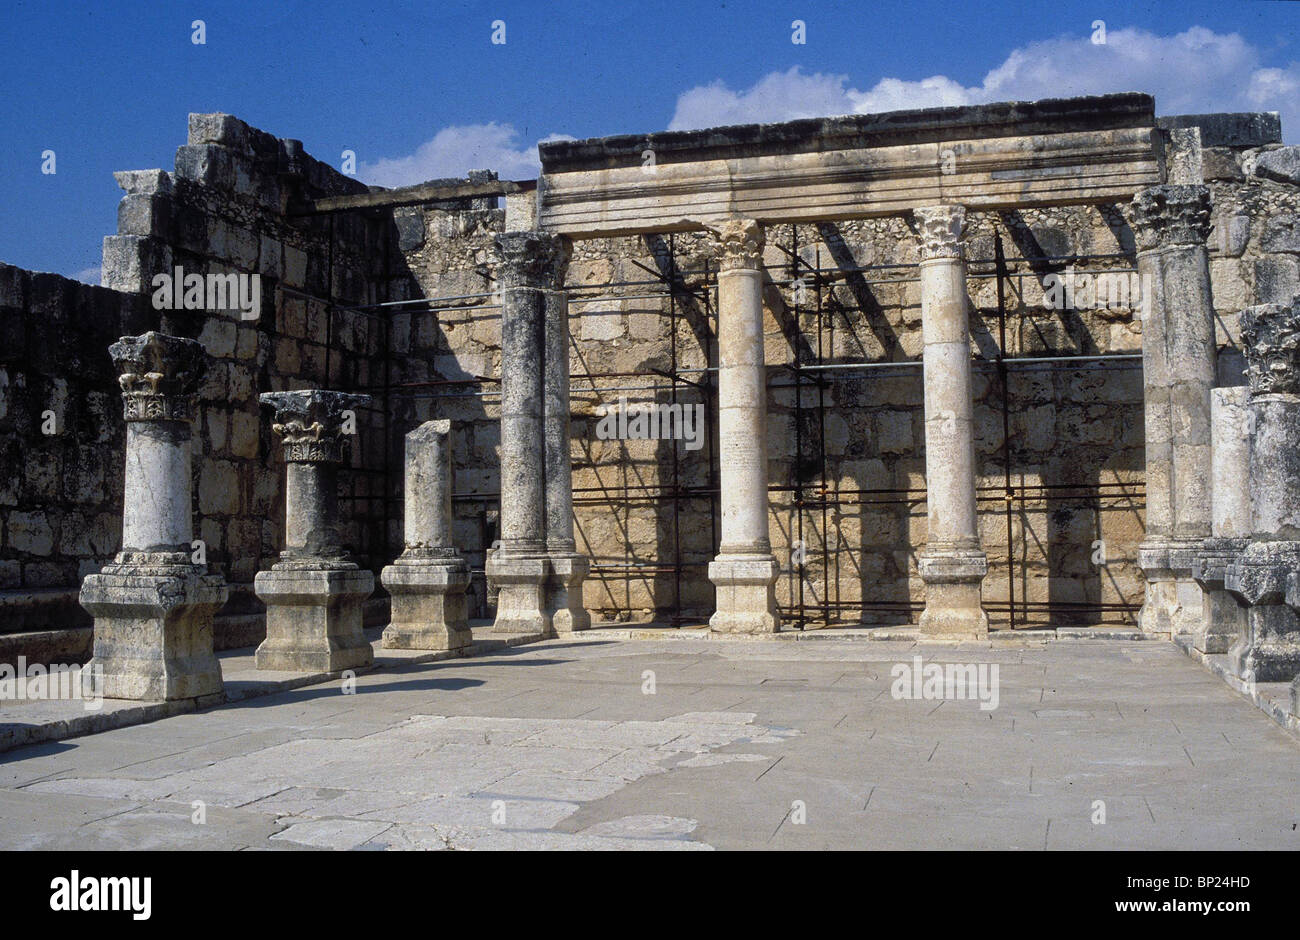 CAPERNAUM - REMAINS OF THE SPLENDID SYNAGOGUE NEAR THE SEA OF GALILEE. IT STOOD IN THE CENTREE OF THE VILLAGE MENTIONED - Stock Image